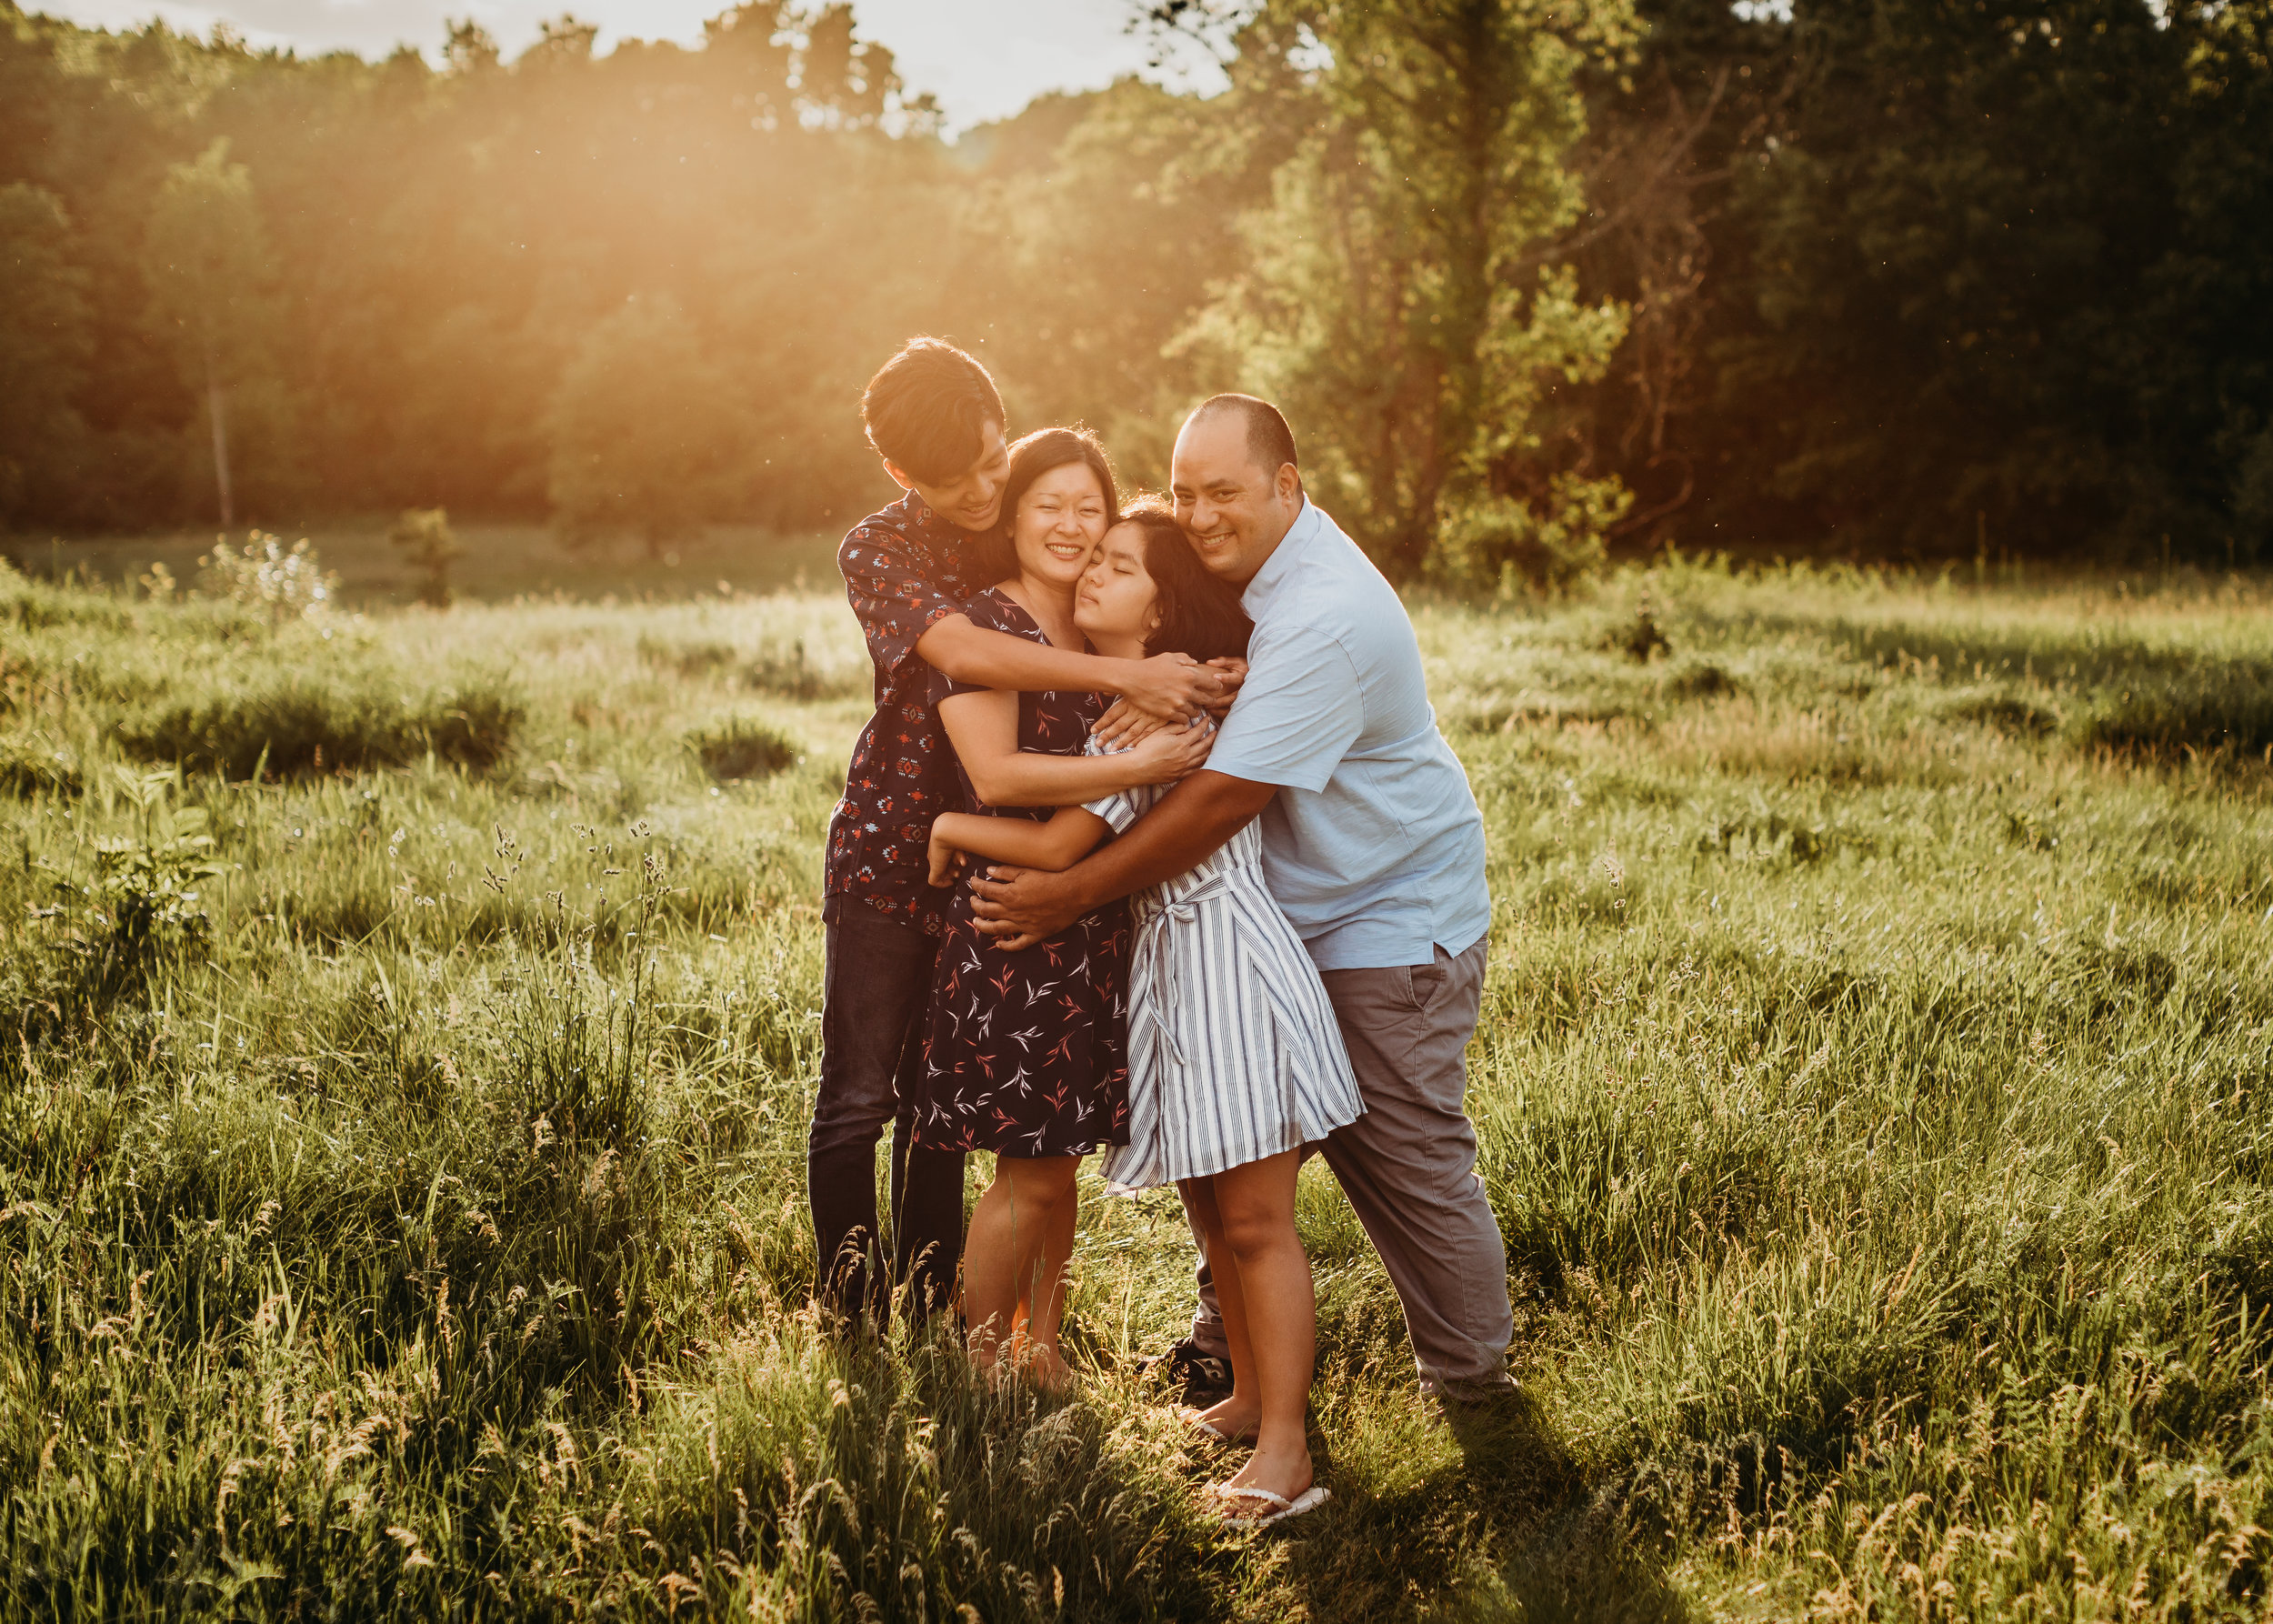 It's important to take family photos even when your kids are getting older—perhaps ESPECIALLY when they're getting older. Boston family photographer Joy LeDuc shares her best tips for getting beautiful portraits with tweens and teens.